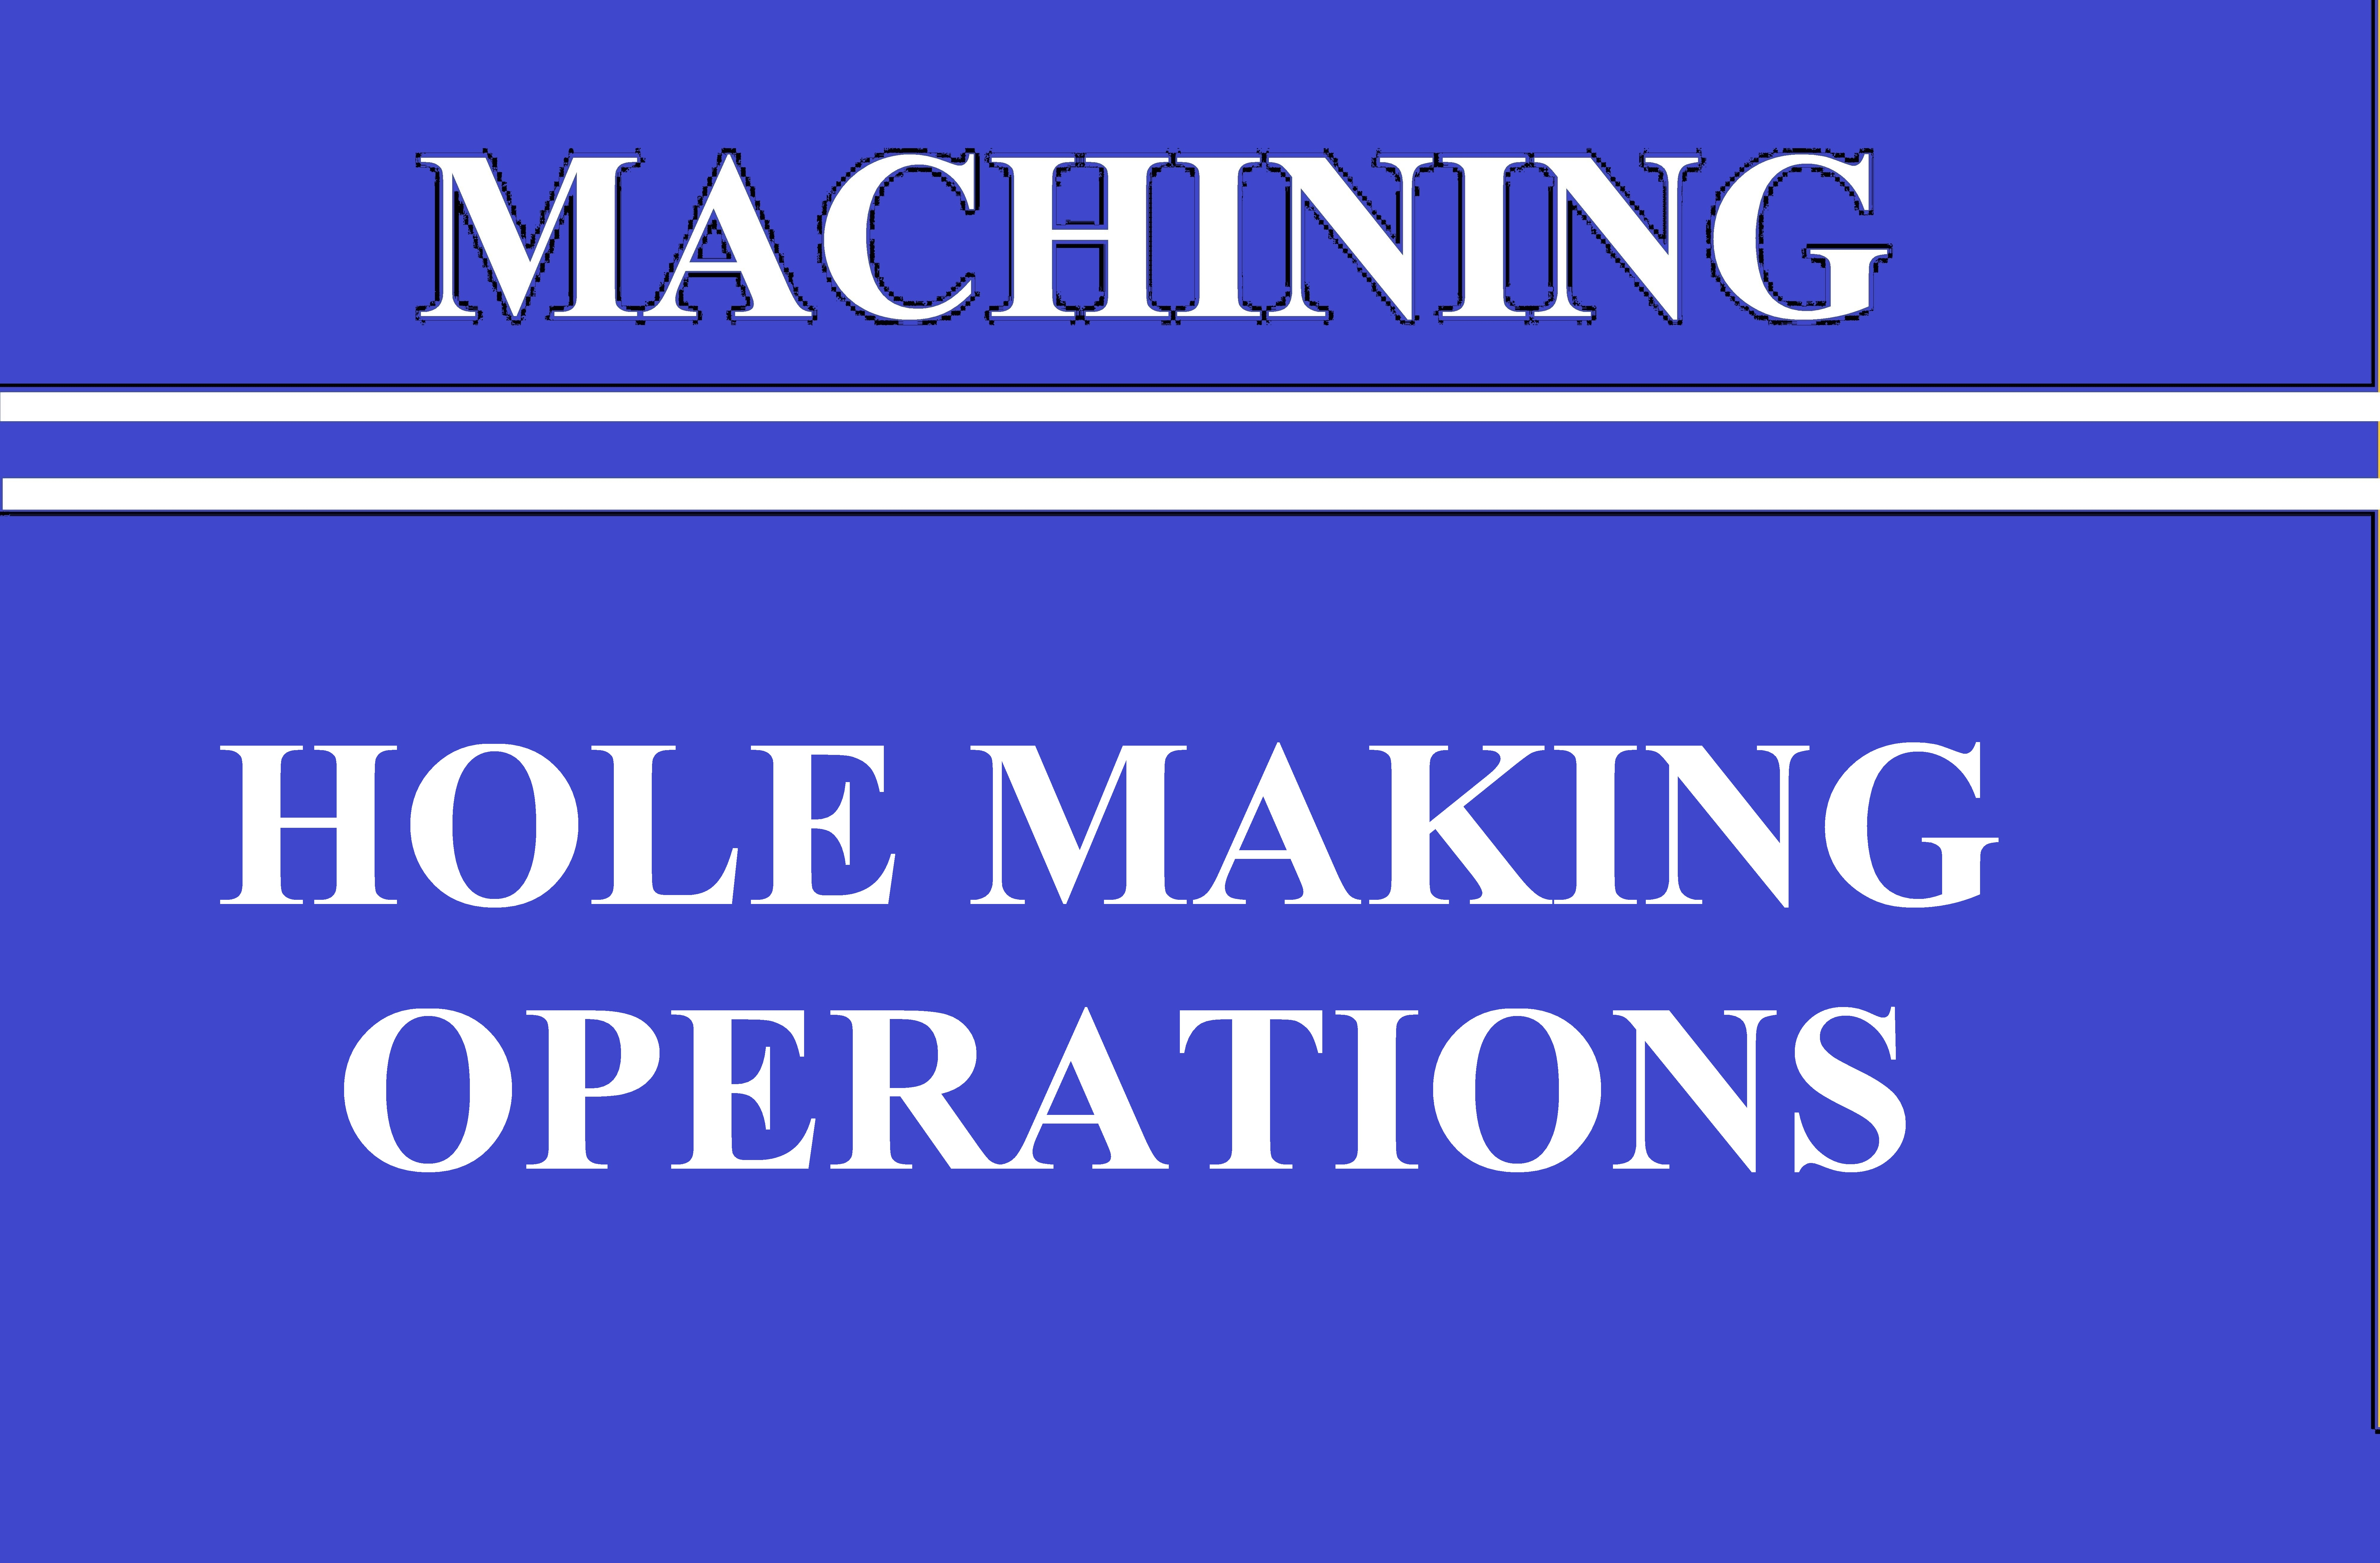 Lec 18 Other Hole Making operations